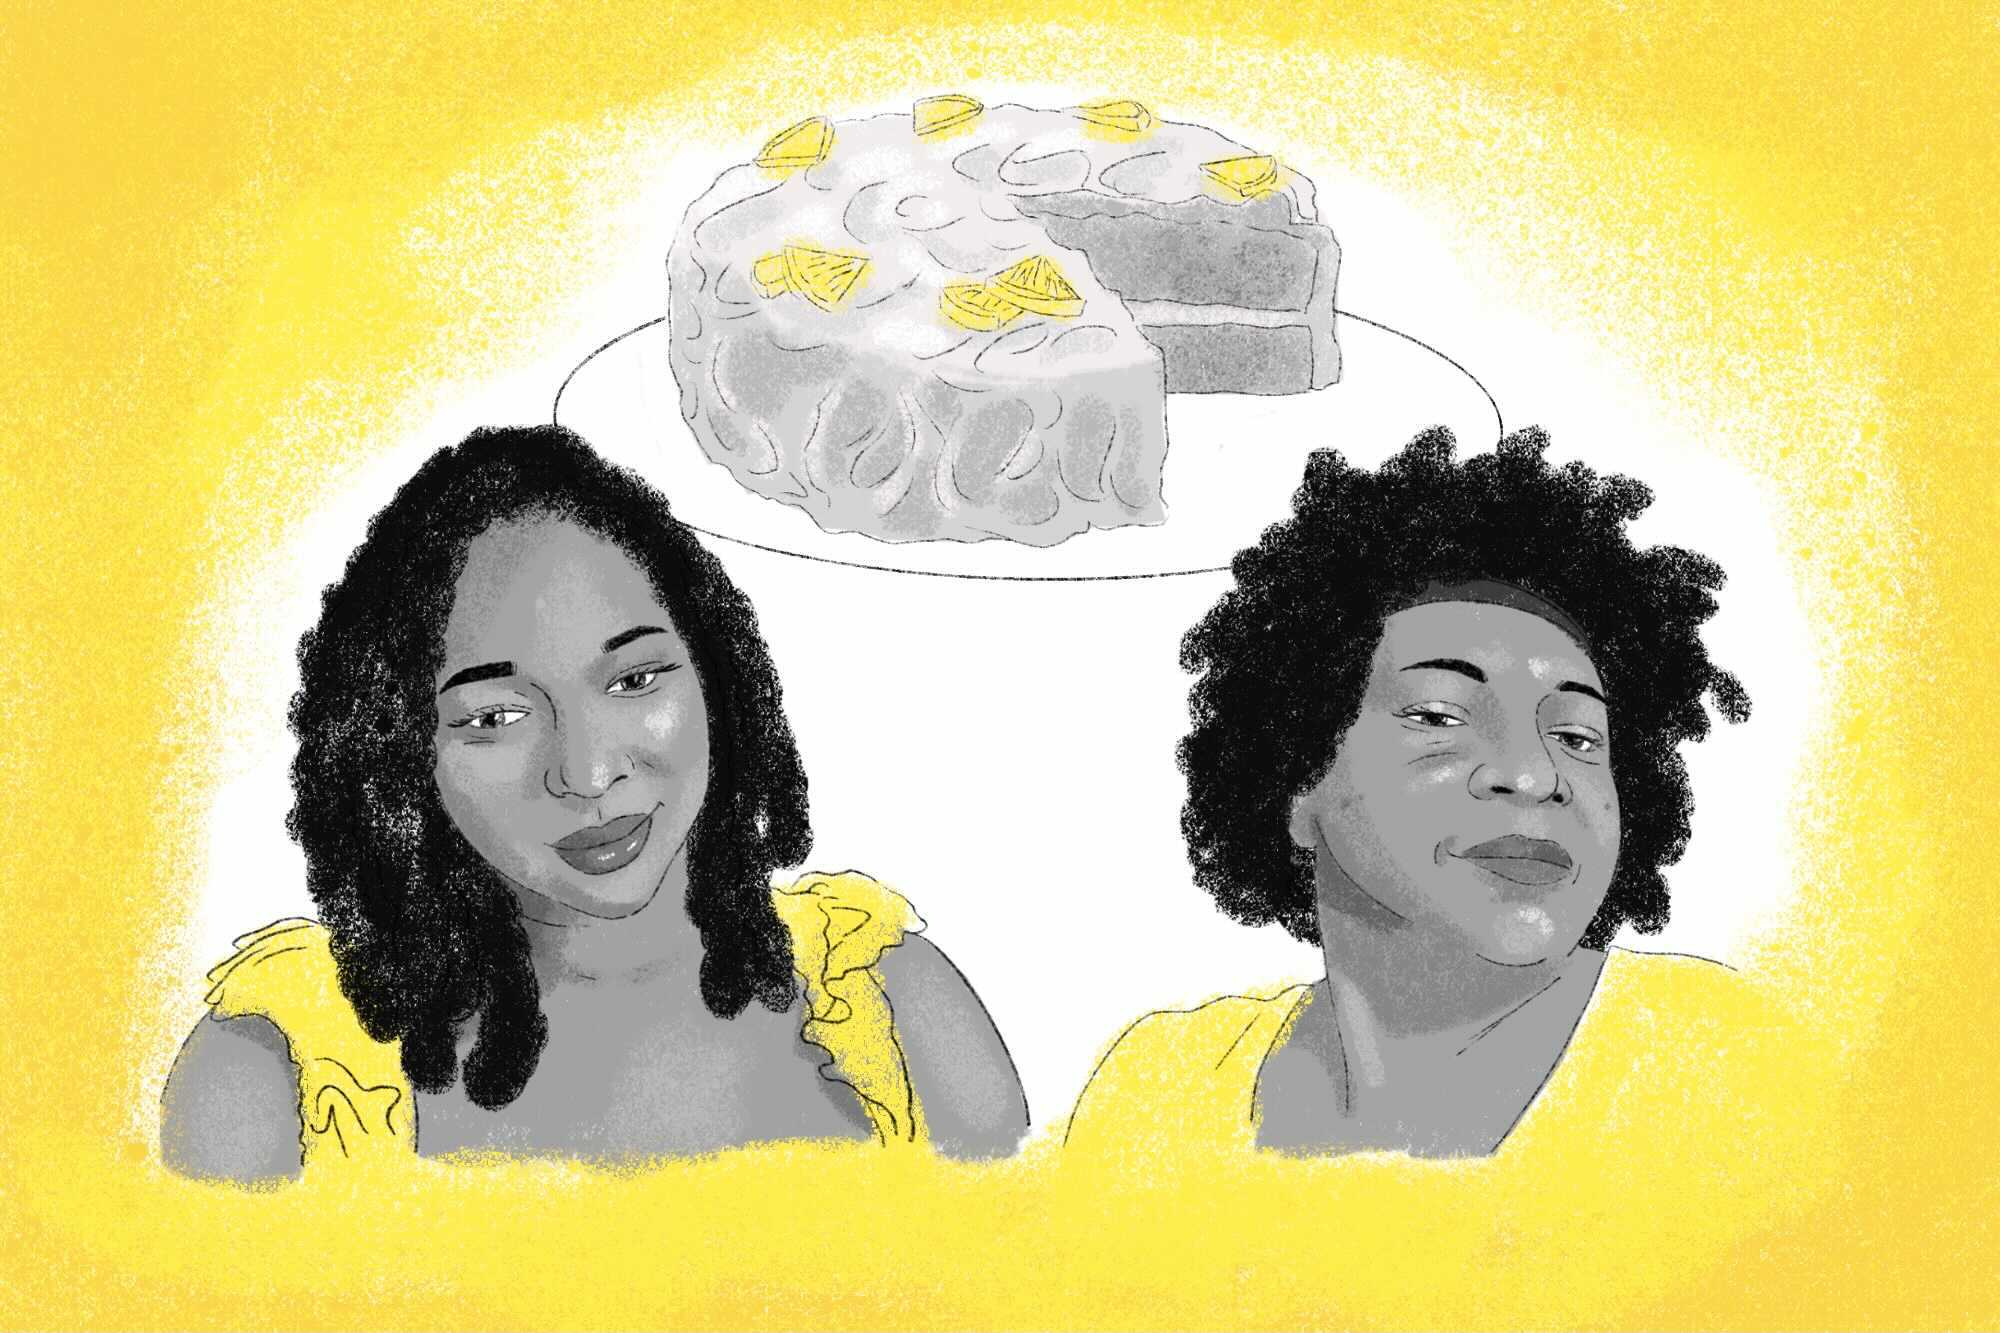 Illustration of the writer, her mother, and a lemon layer cake